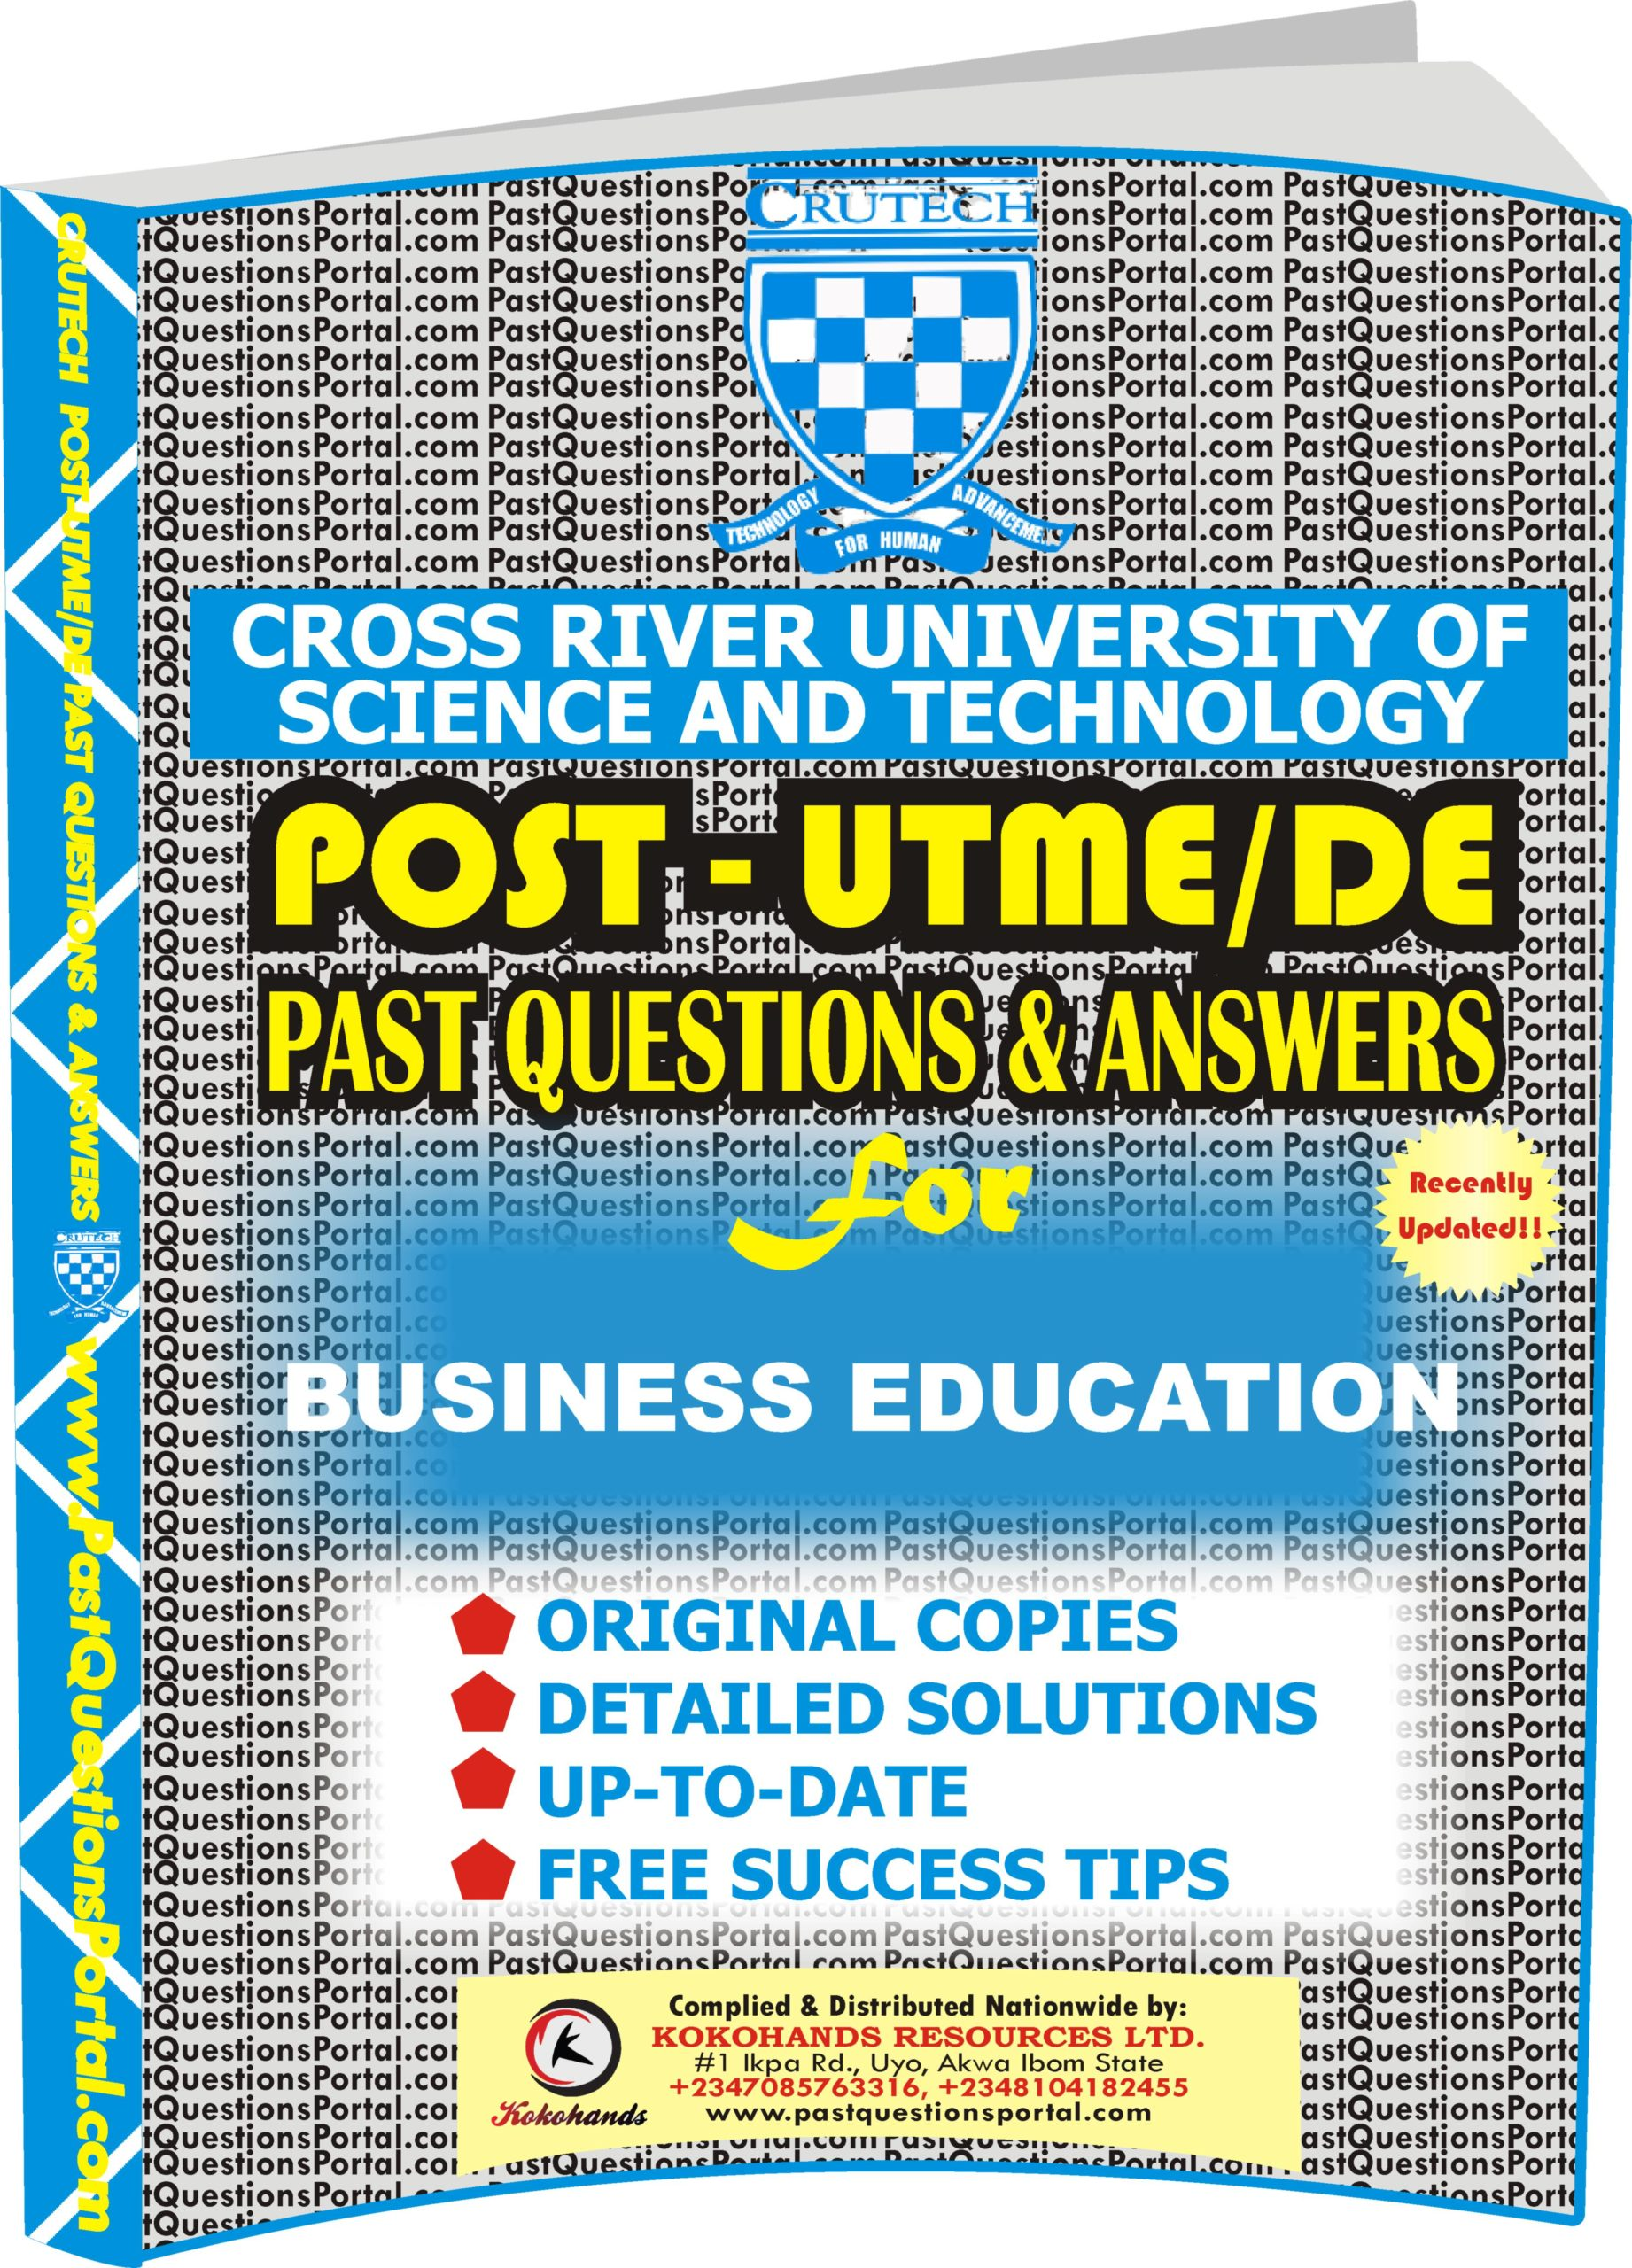 CRUTECH Post UTME Past Questions for BUSINESS EDUCATION